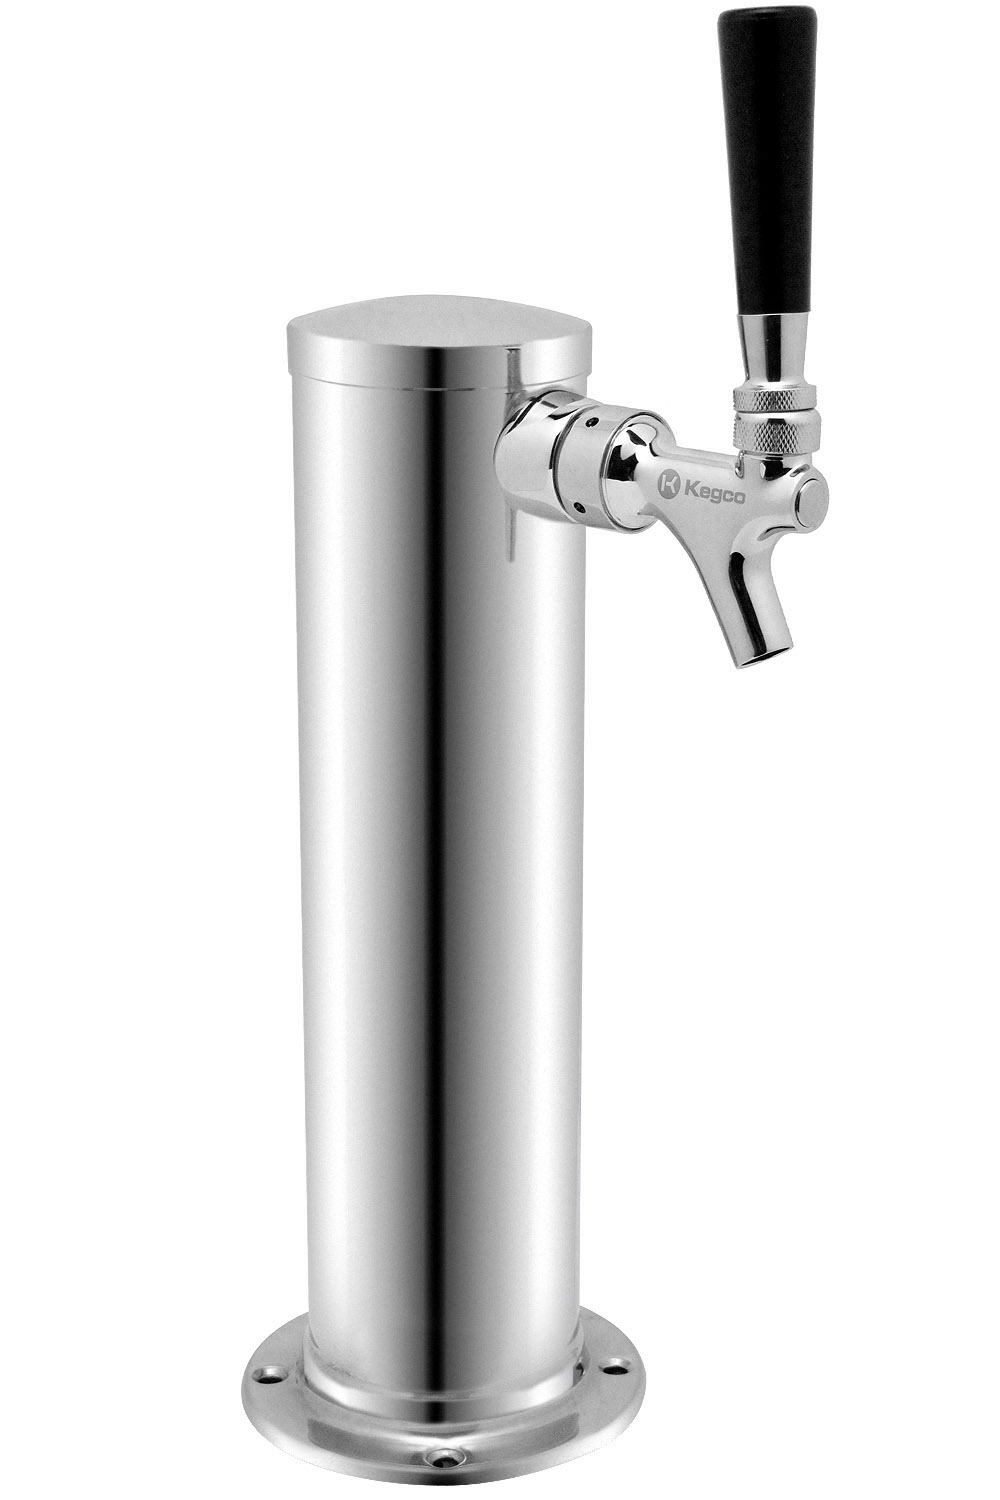 tap amazon kegco beer beertower perlick dining stainless draft faucet com double w faucets kitchen kegging equipment dp